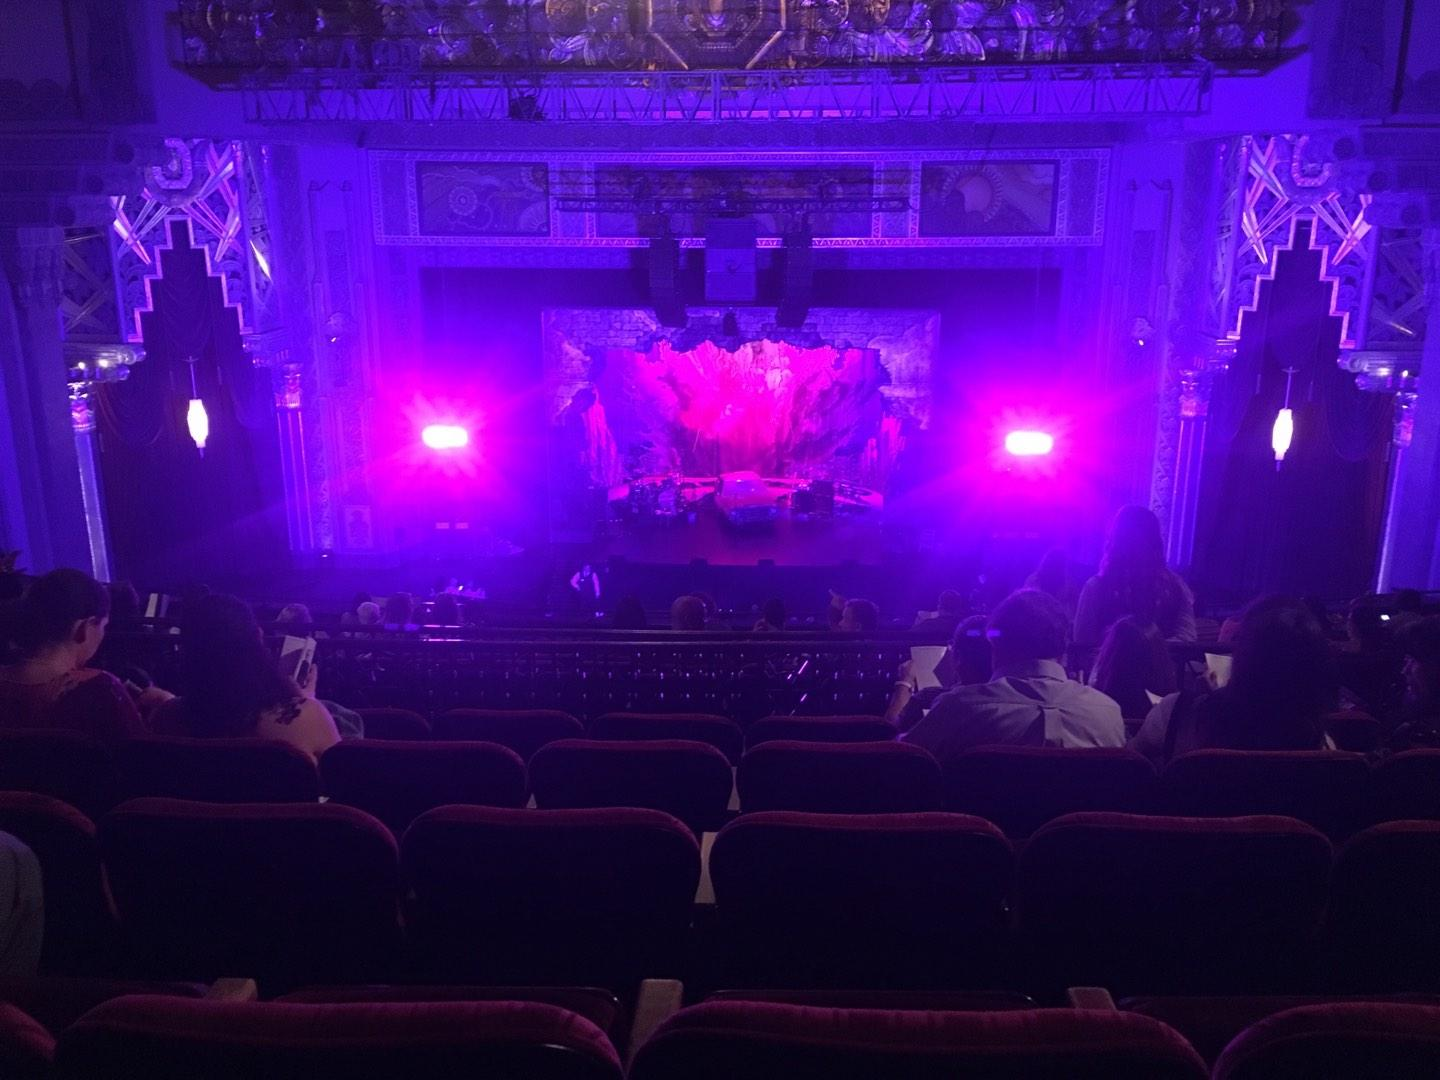 Hollywood Pantages Theatre Section Mezzanine C Row Q Seat 104